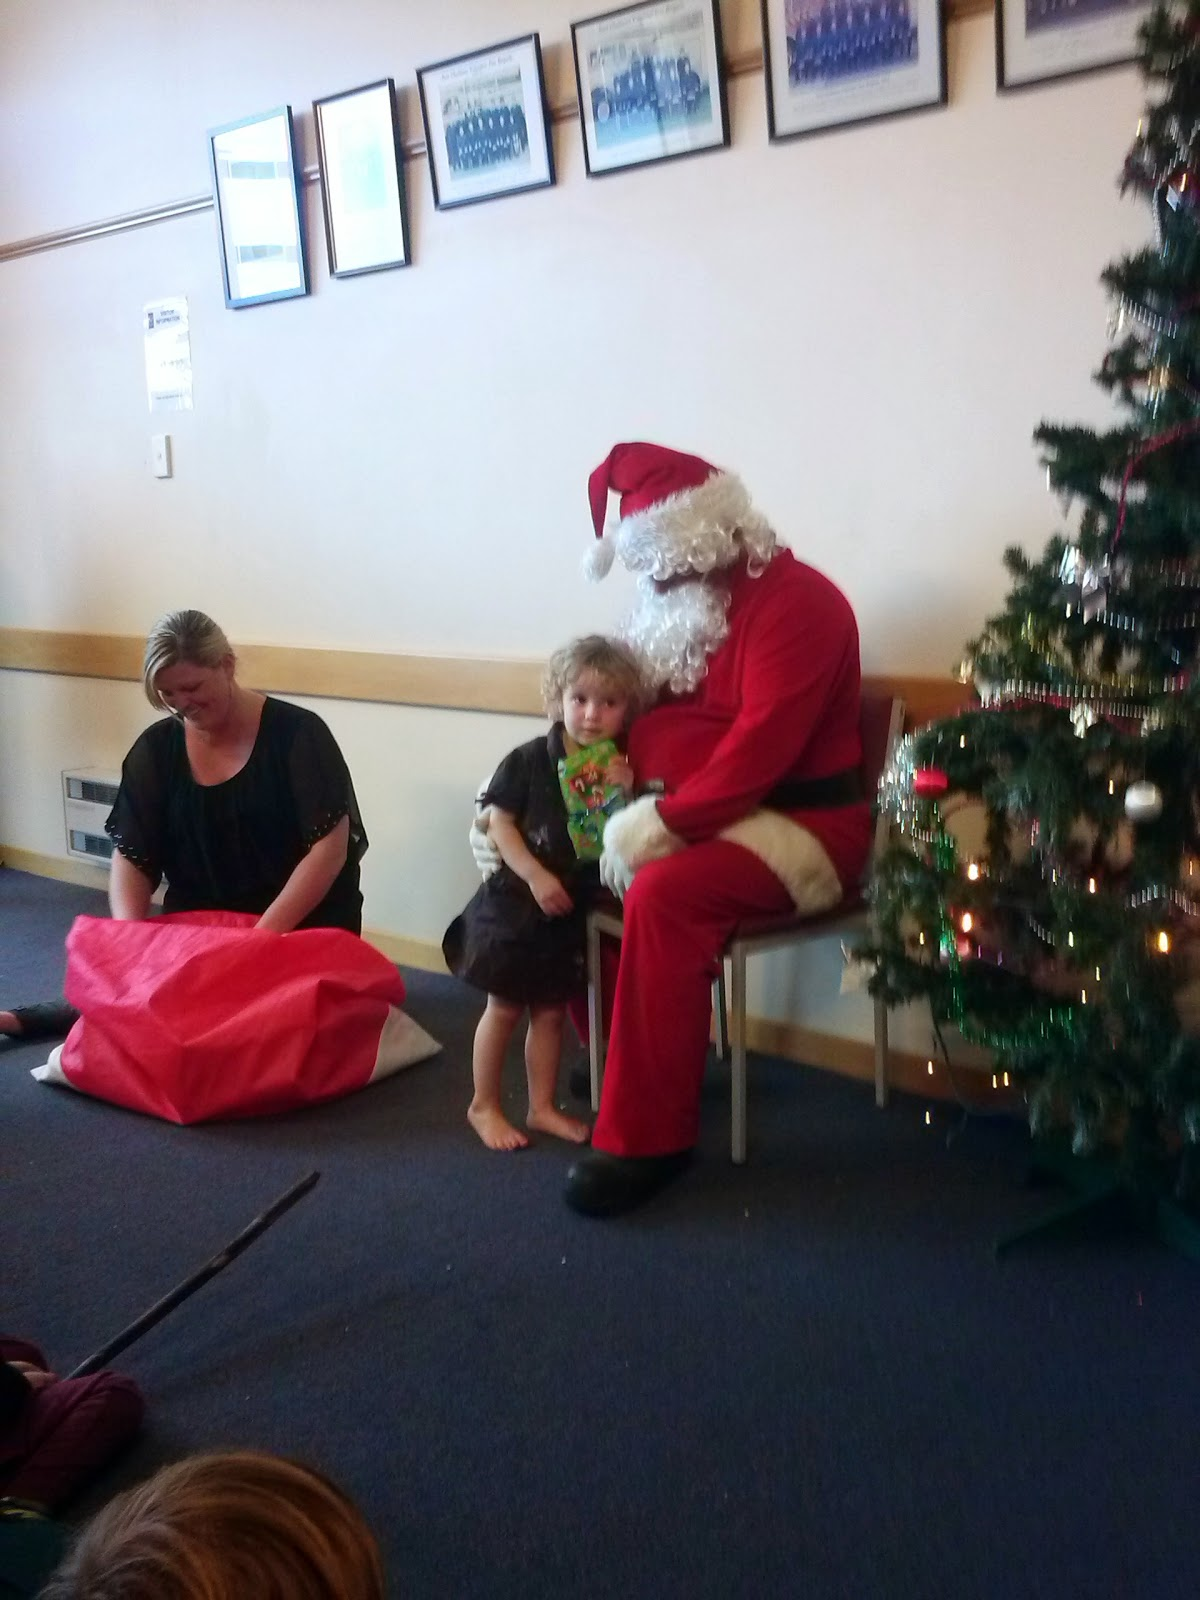 Meeting Santa at the Christmas party